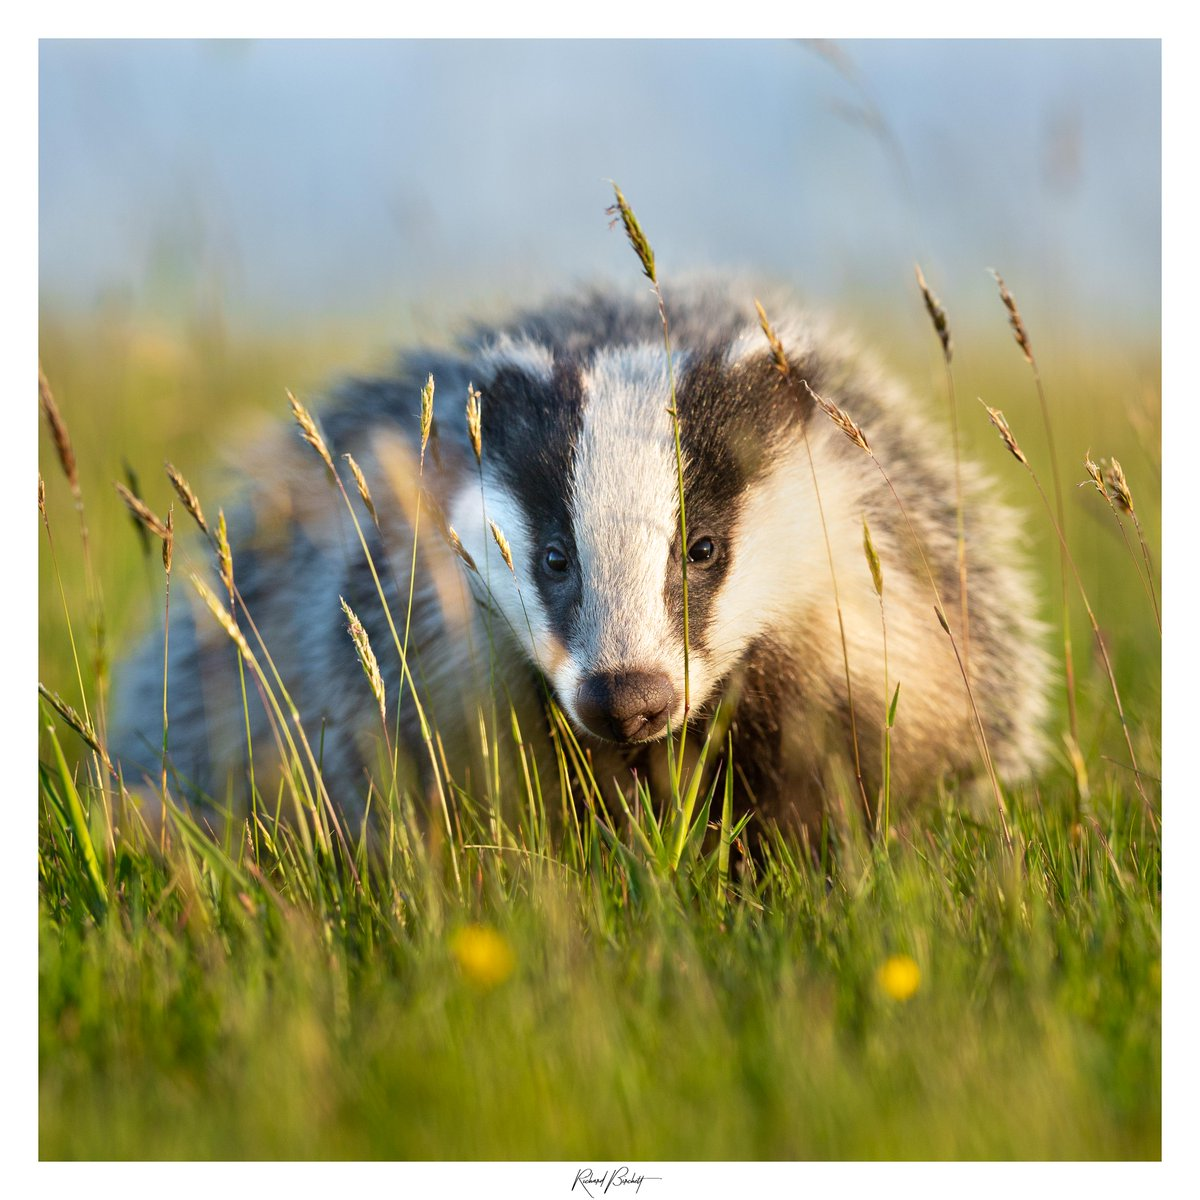 I'm excited to tell you that my Badger image has been shortlisted for the BPA Awards 2020, under the category Land Animal. Please help by voting for me, it's simple just follow the link below and click VOTE!  @CwallWildlife @CBWPS1 @RSPBImages @WildlifeMag